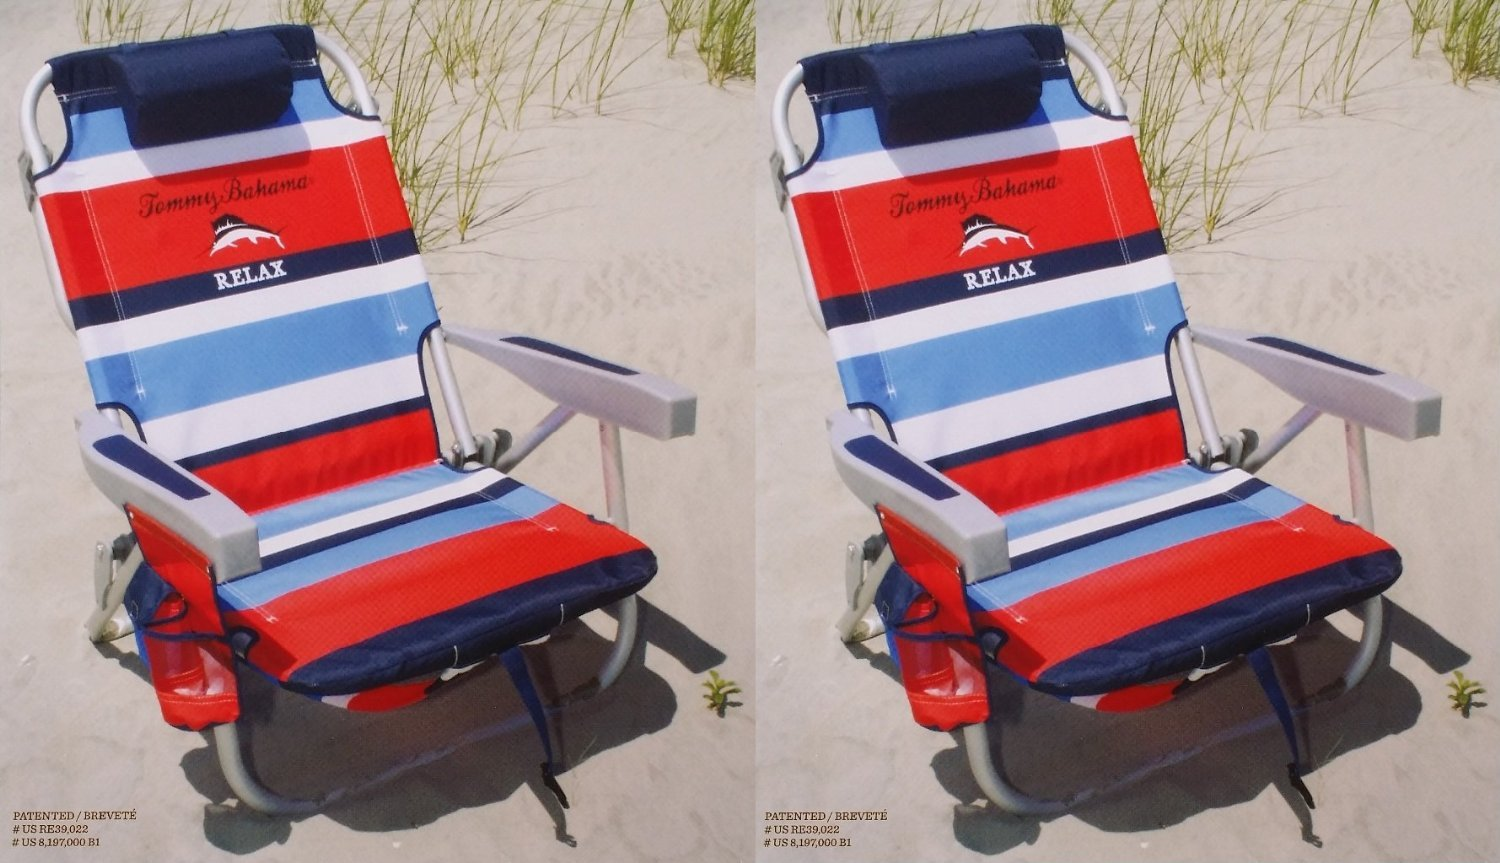 2 Tommy Bahama 2015 Backpack Cooler Chairs with Storage Pouch and Towel Bar- red/blue